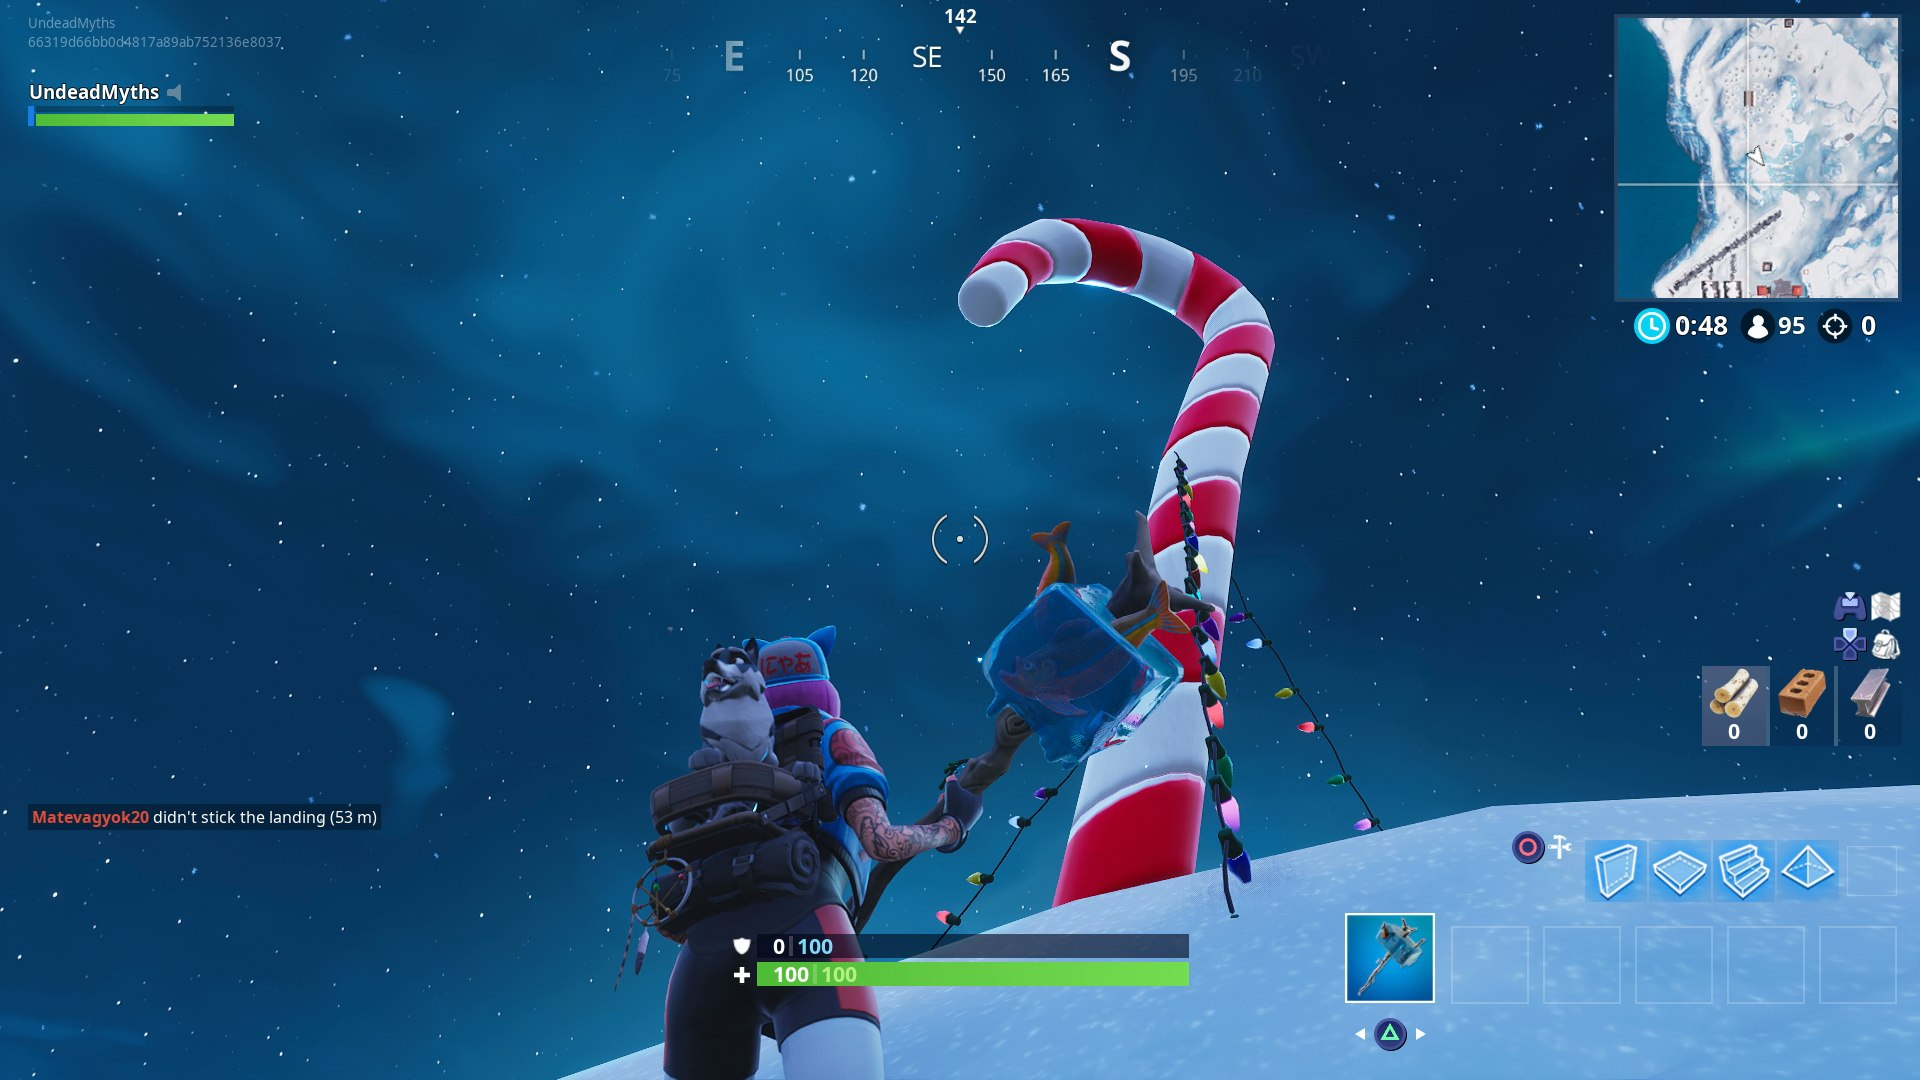 Fortnite Candy Cane Locations Where To Find All The Giant Candy